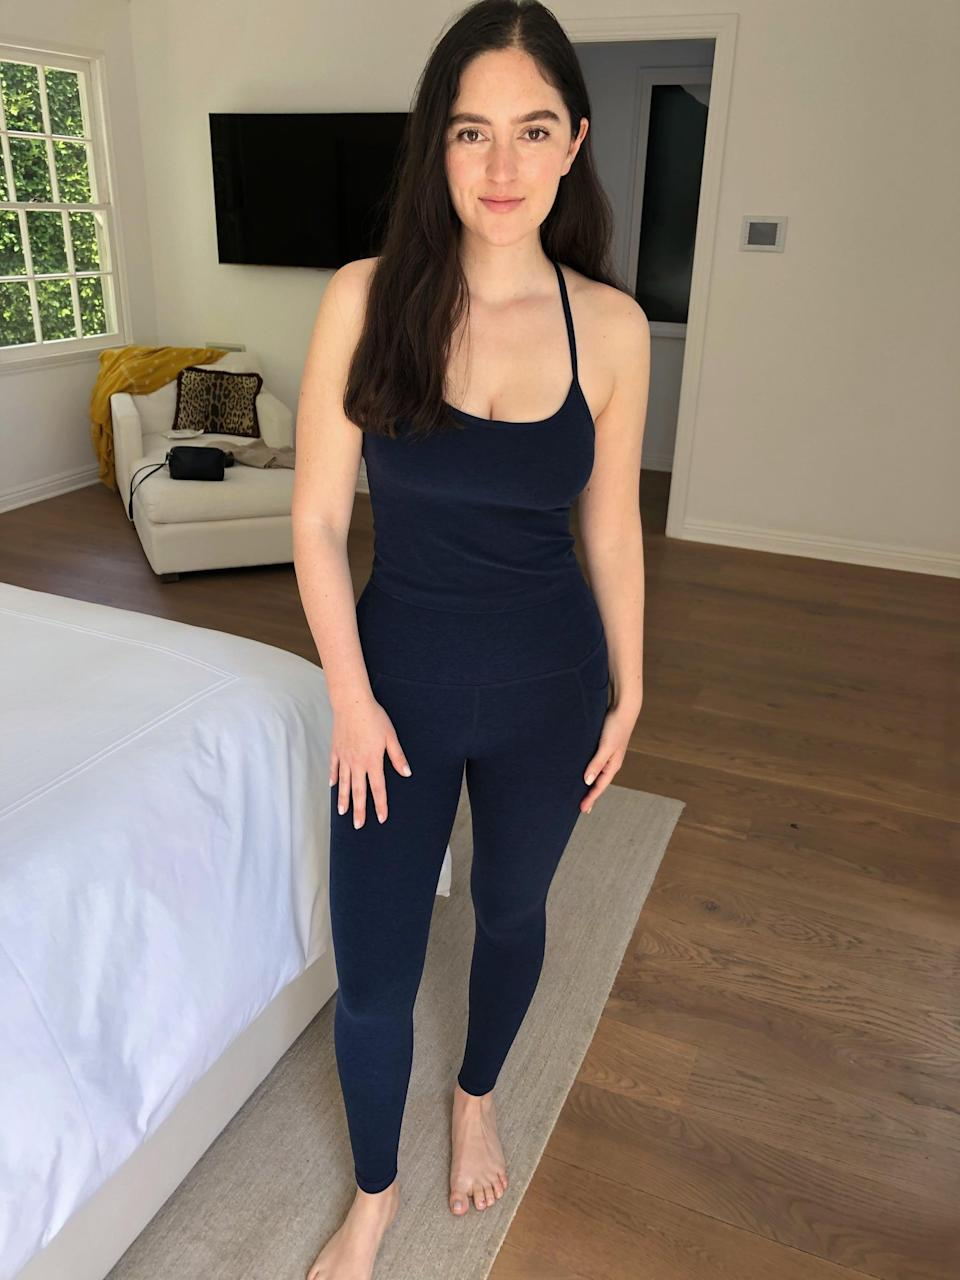 <p>It's me in my uniform, also known as the <span>Beyond Yoga Spacedye Out of Pocket High Waisted Midi Legging</span> ($99) and <span>Beyond Yoga Spacedye Slim Racerback Cropped Tank</span> ($66). I have three colors, but am partial to this navy blue.</p>